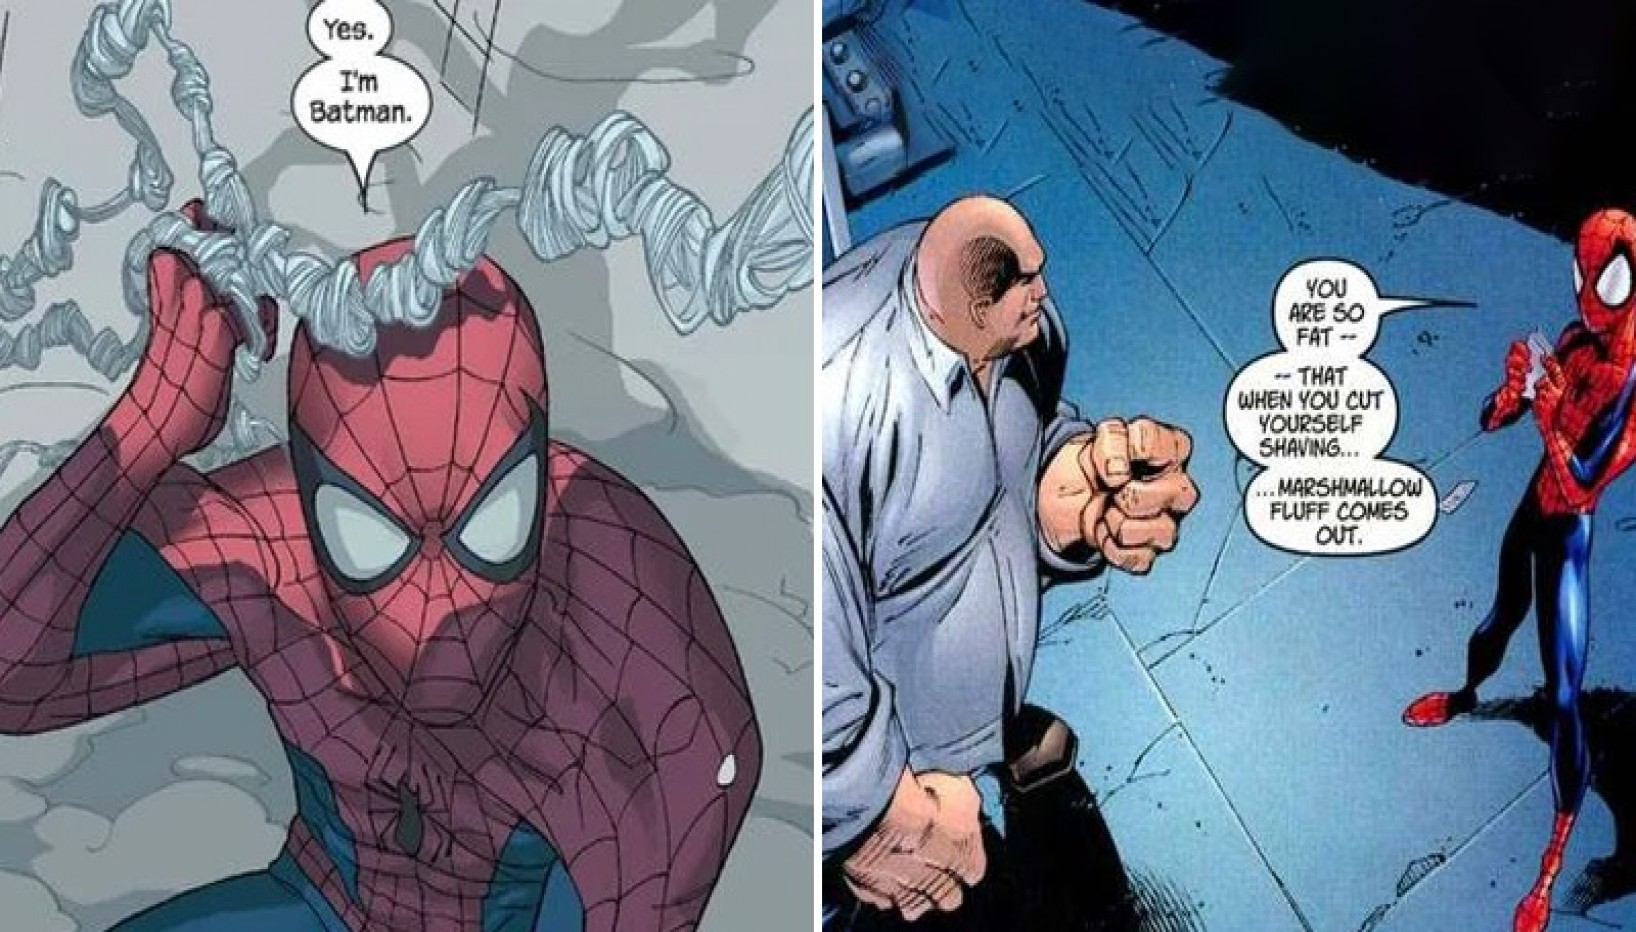 10 Funniest Spiderman Moments From The Comics That Perfectly Illustrate Why He's The Best Superhero